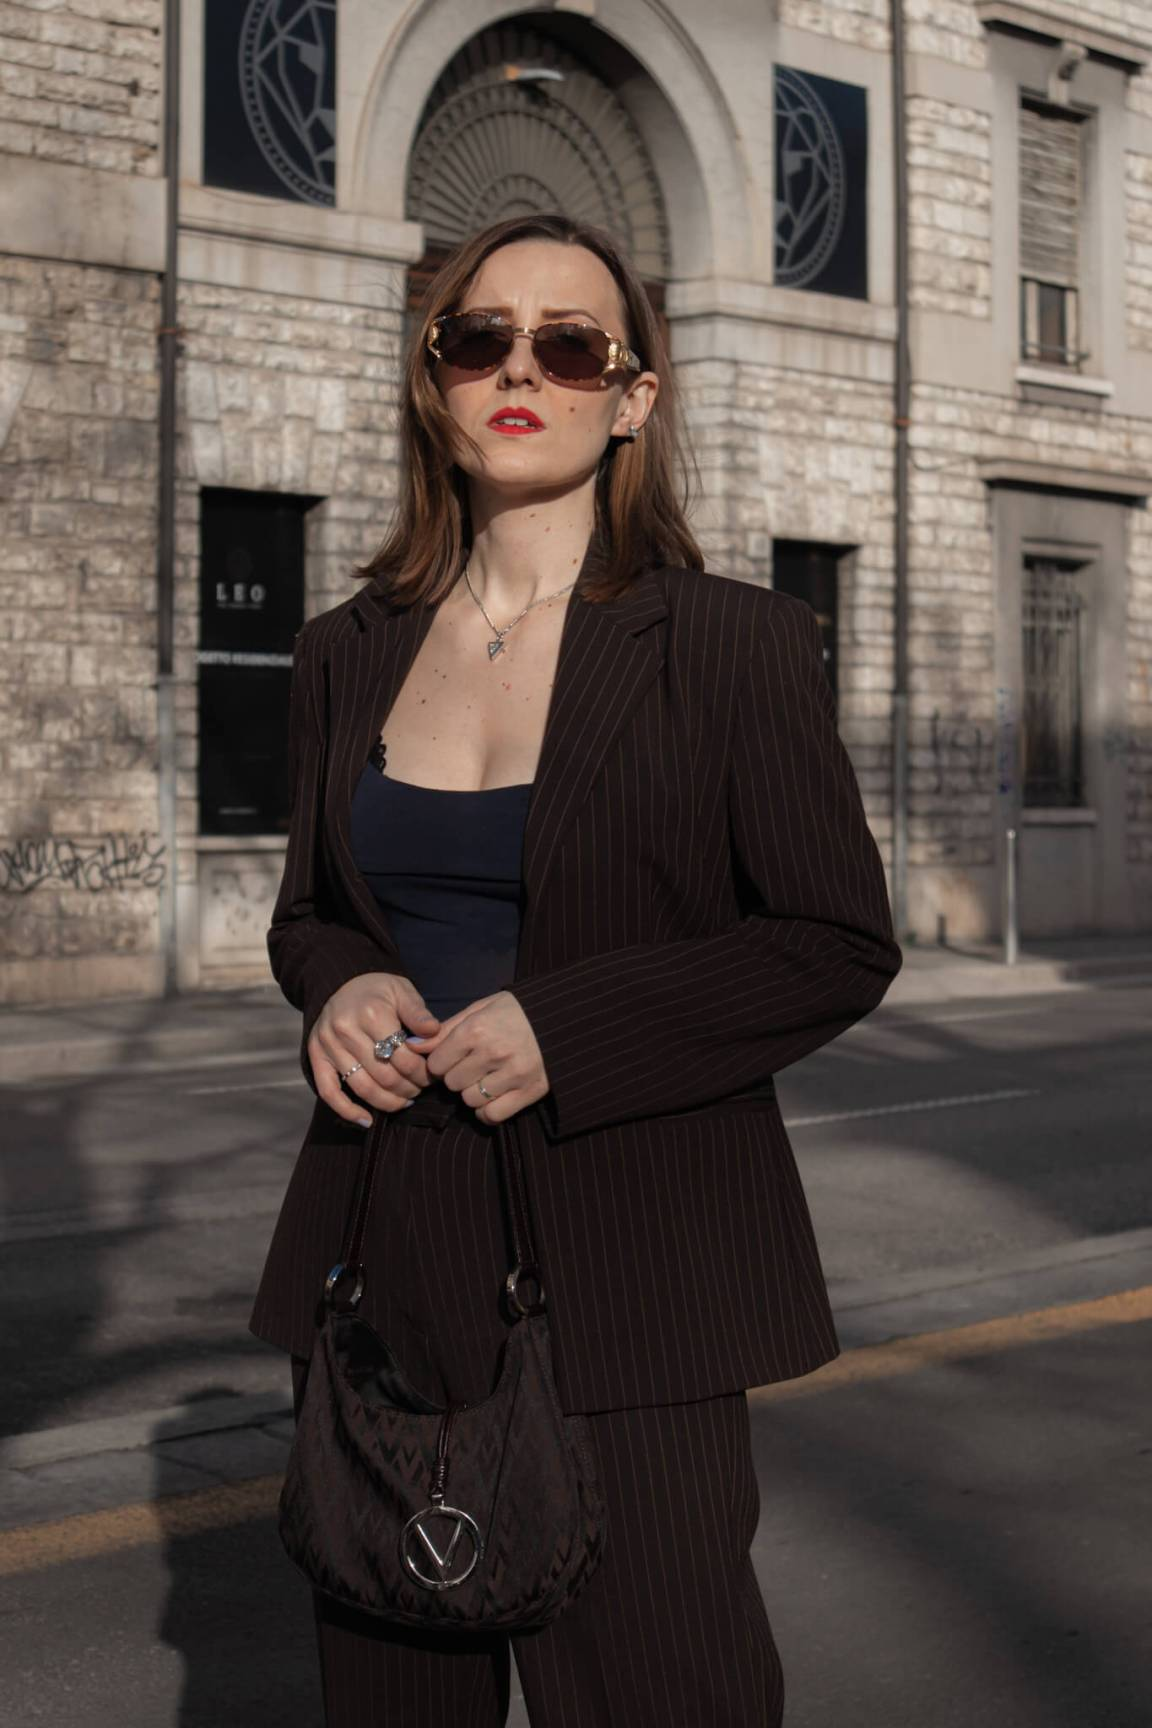 brown-suit-fendi-sunglasses-soybell-by-isabell-zanoletti